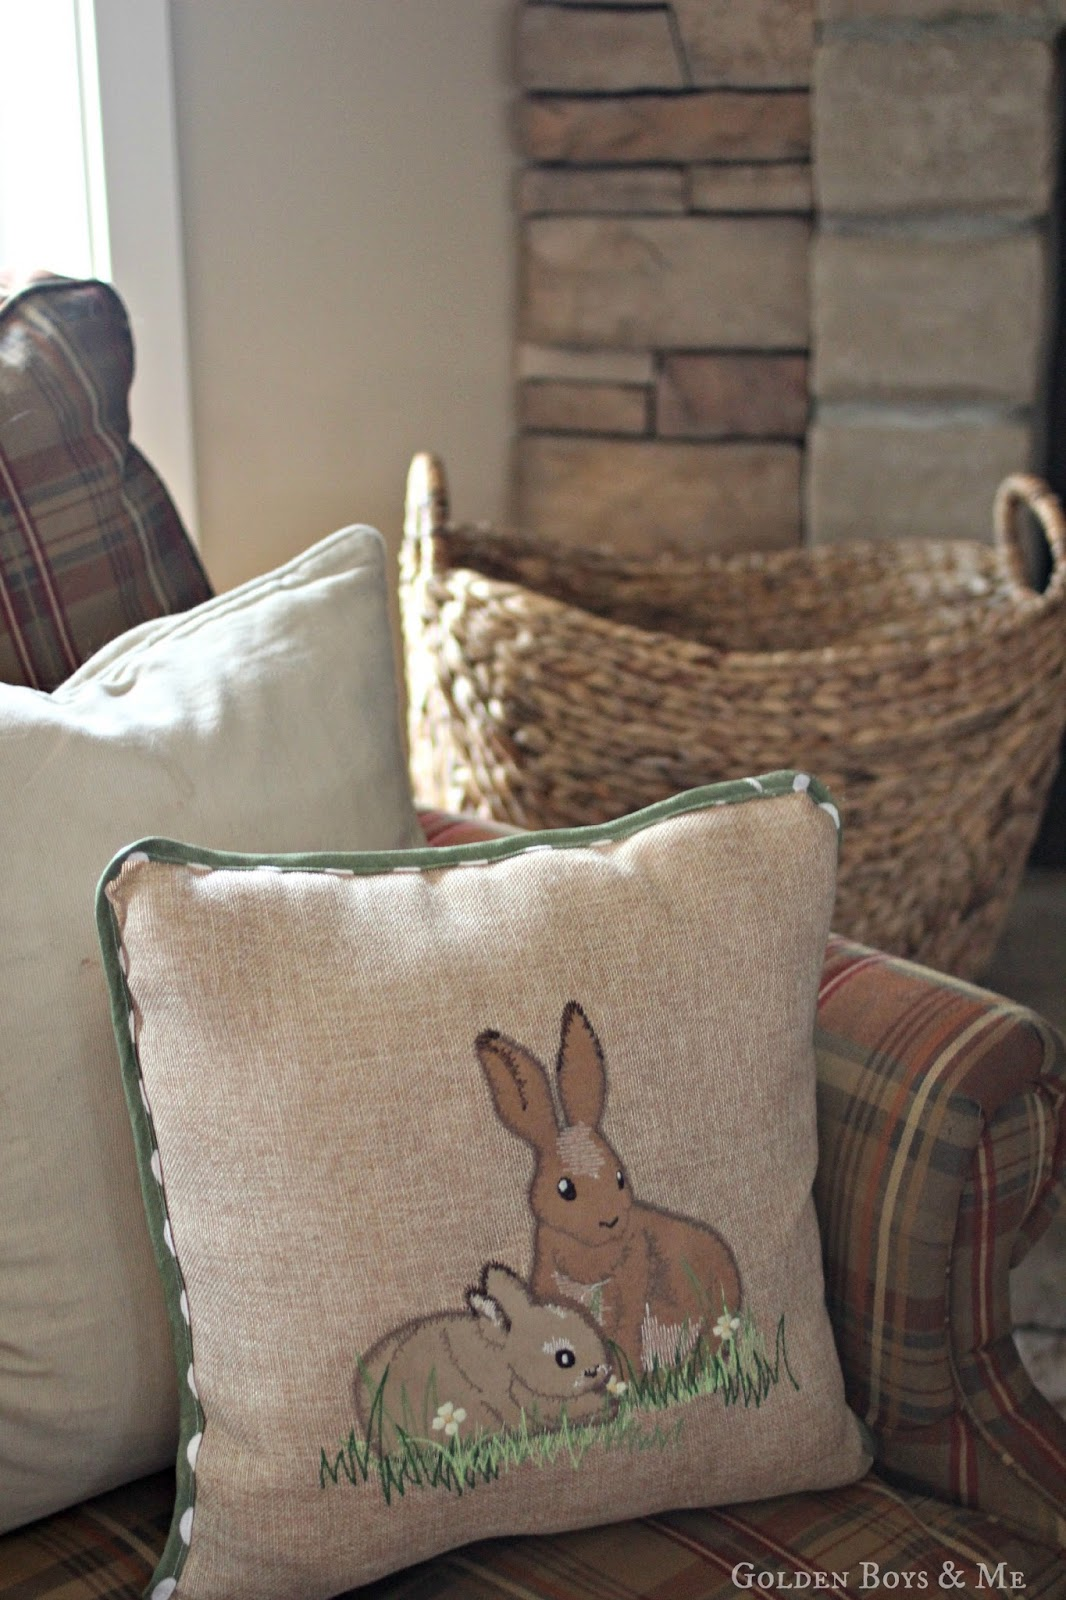 Bunny rabbit throw pillow-www.goldenboysandme.com